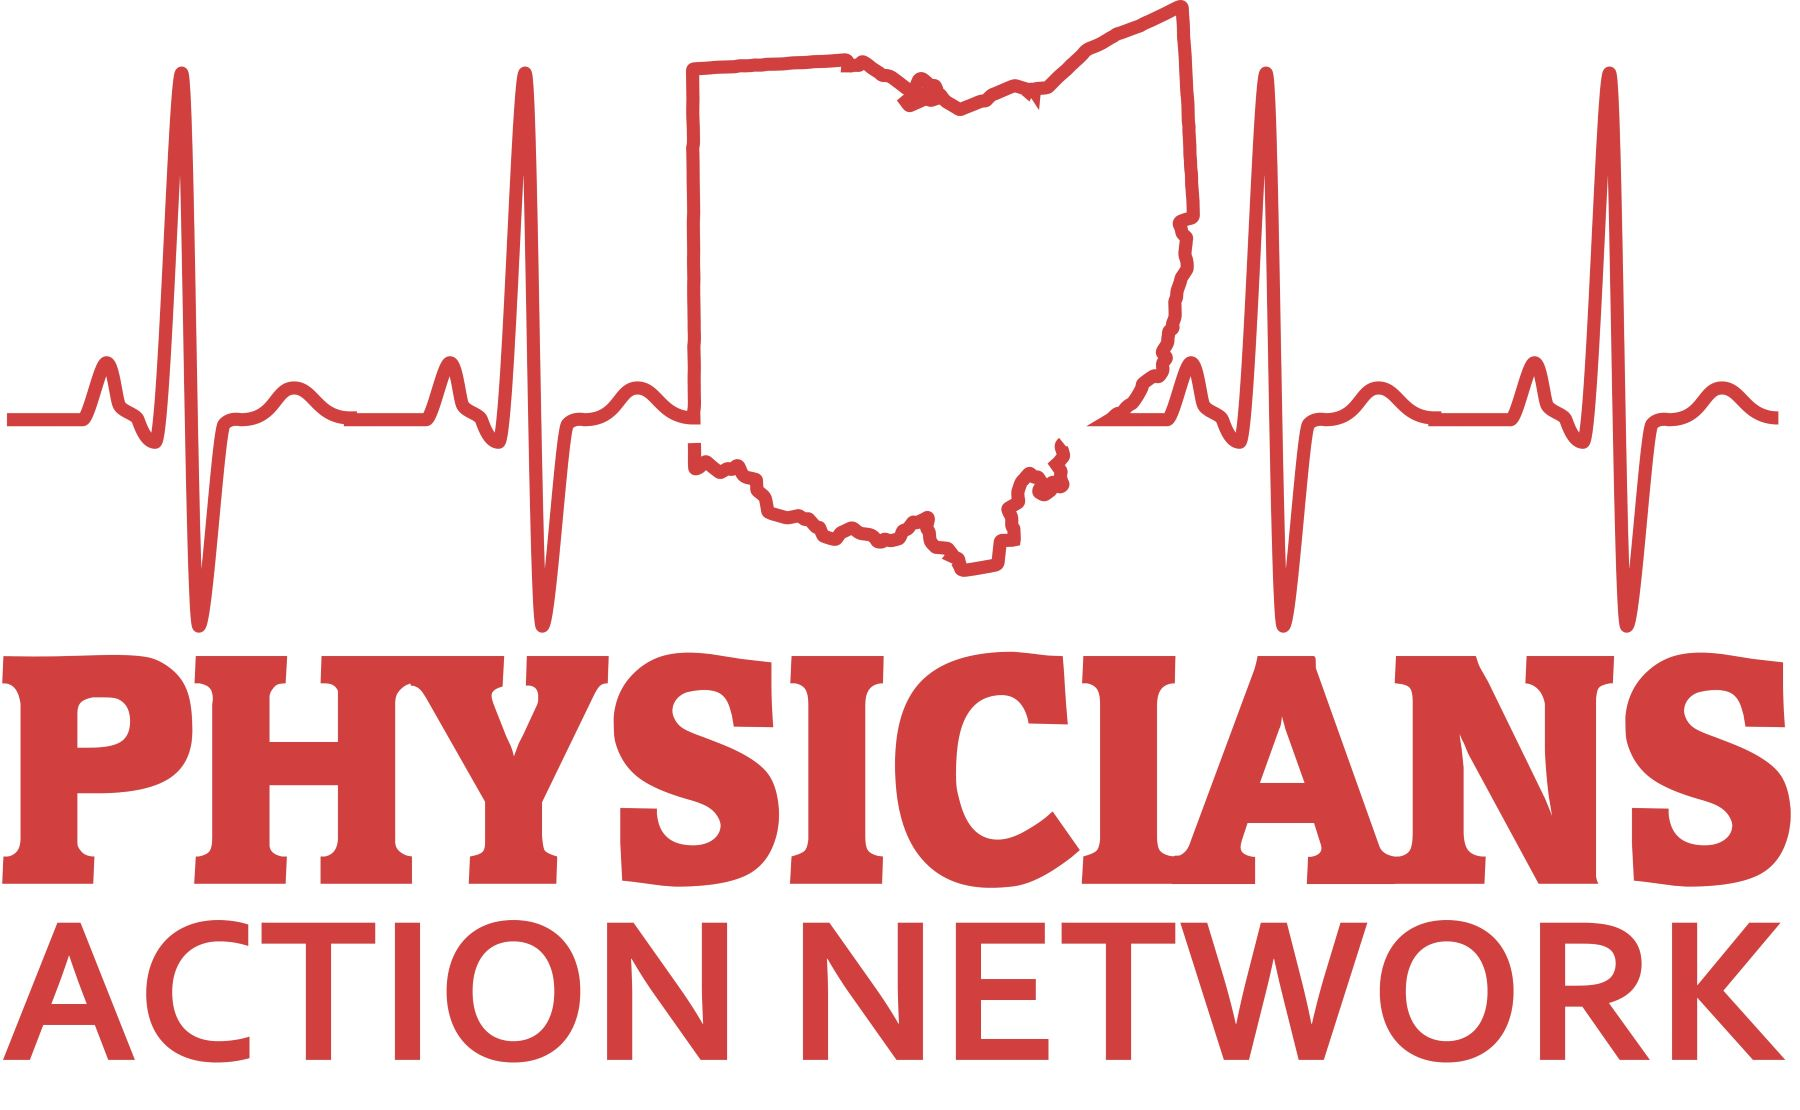 Physicians Action Network